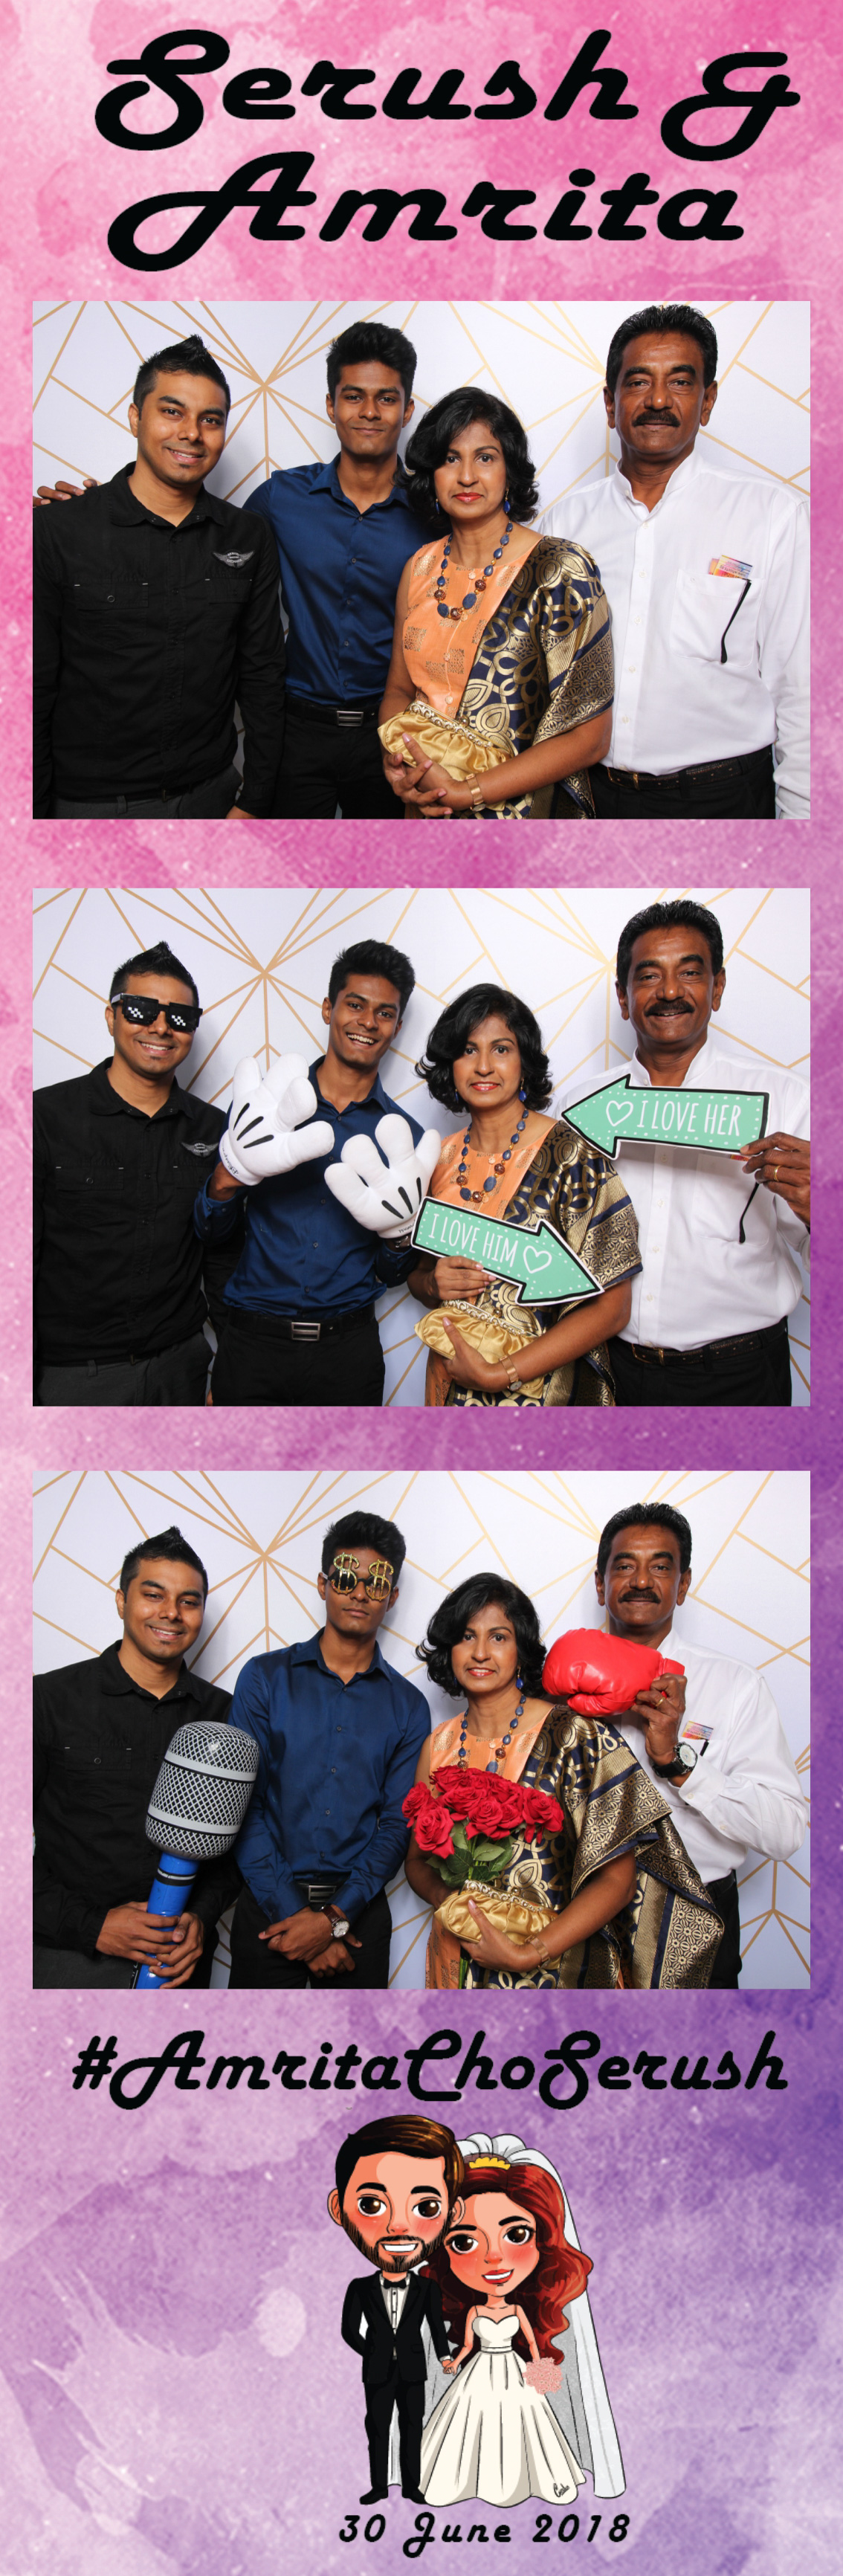 whoots photo booth singapore wedding (3